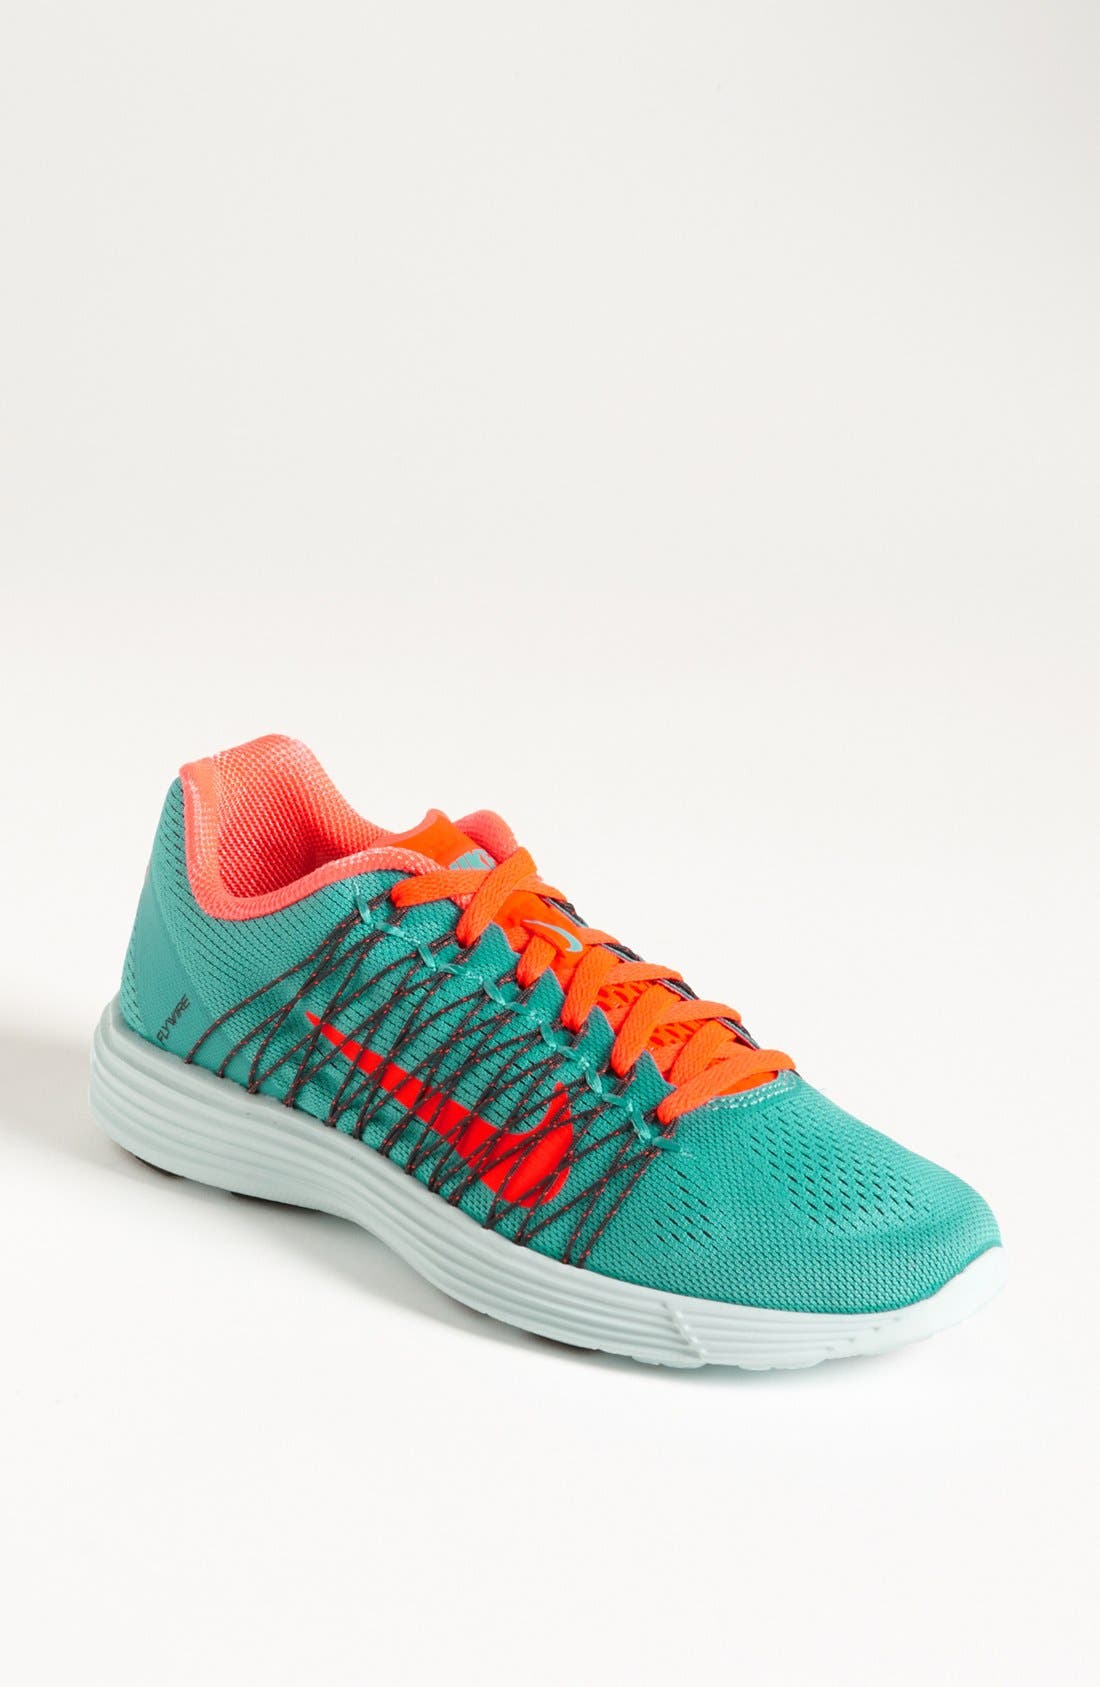 Main Image - Nike 'Lunaracer+ 3' Running Shoe (Women)